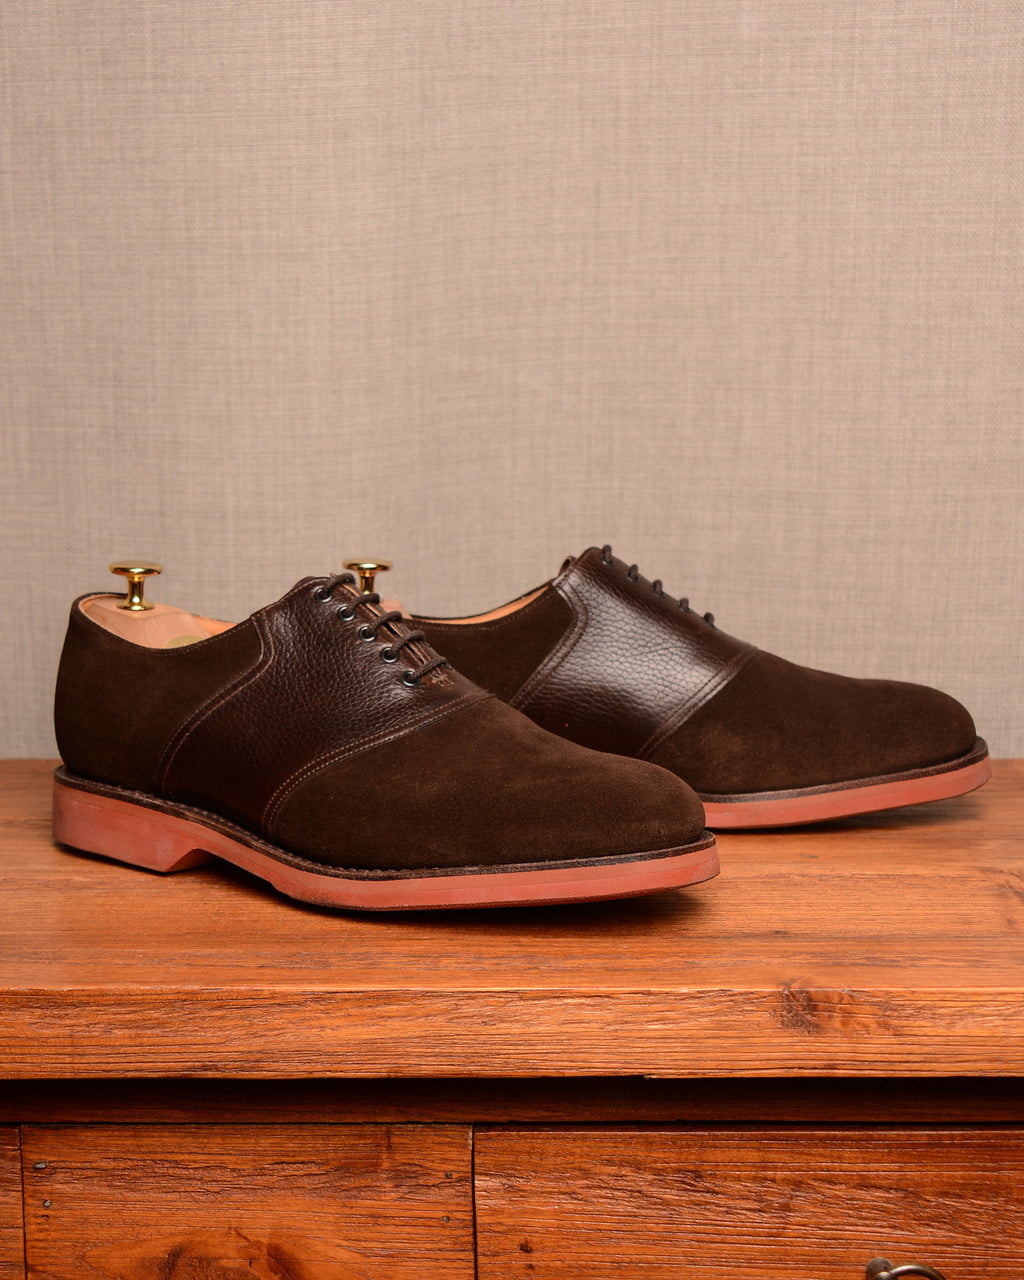 Crockett & Jones Cannock - Dark Brown Suede